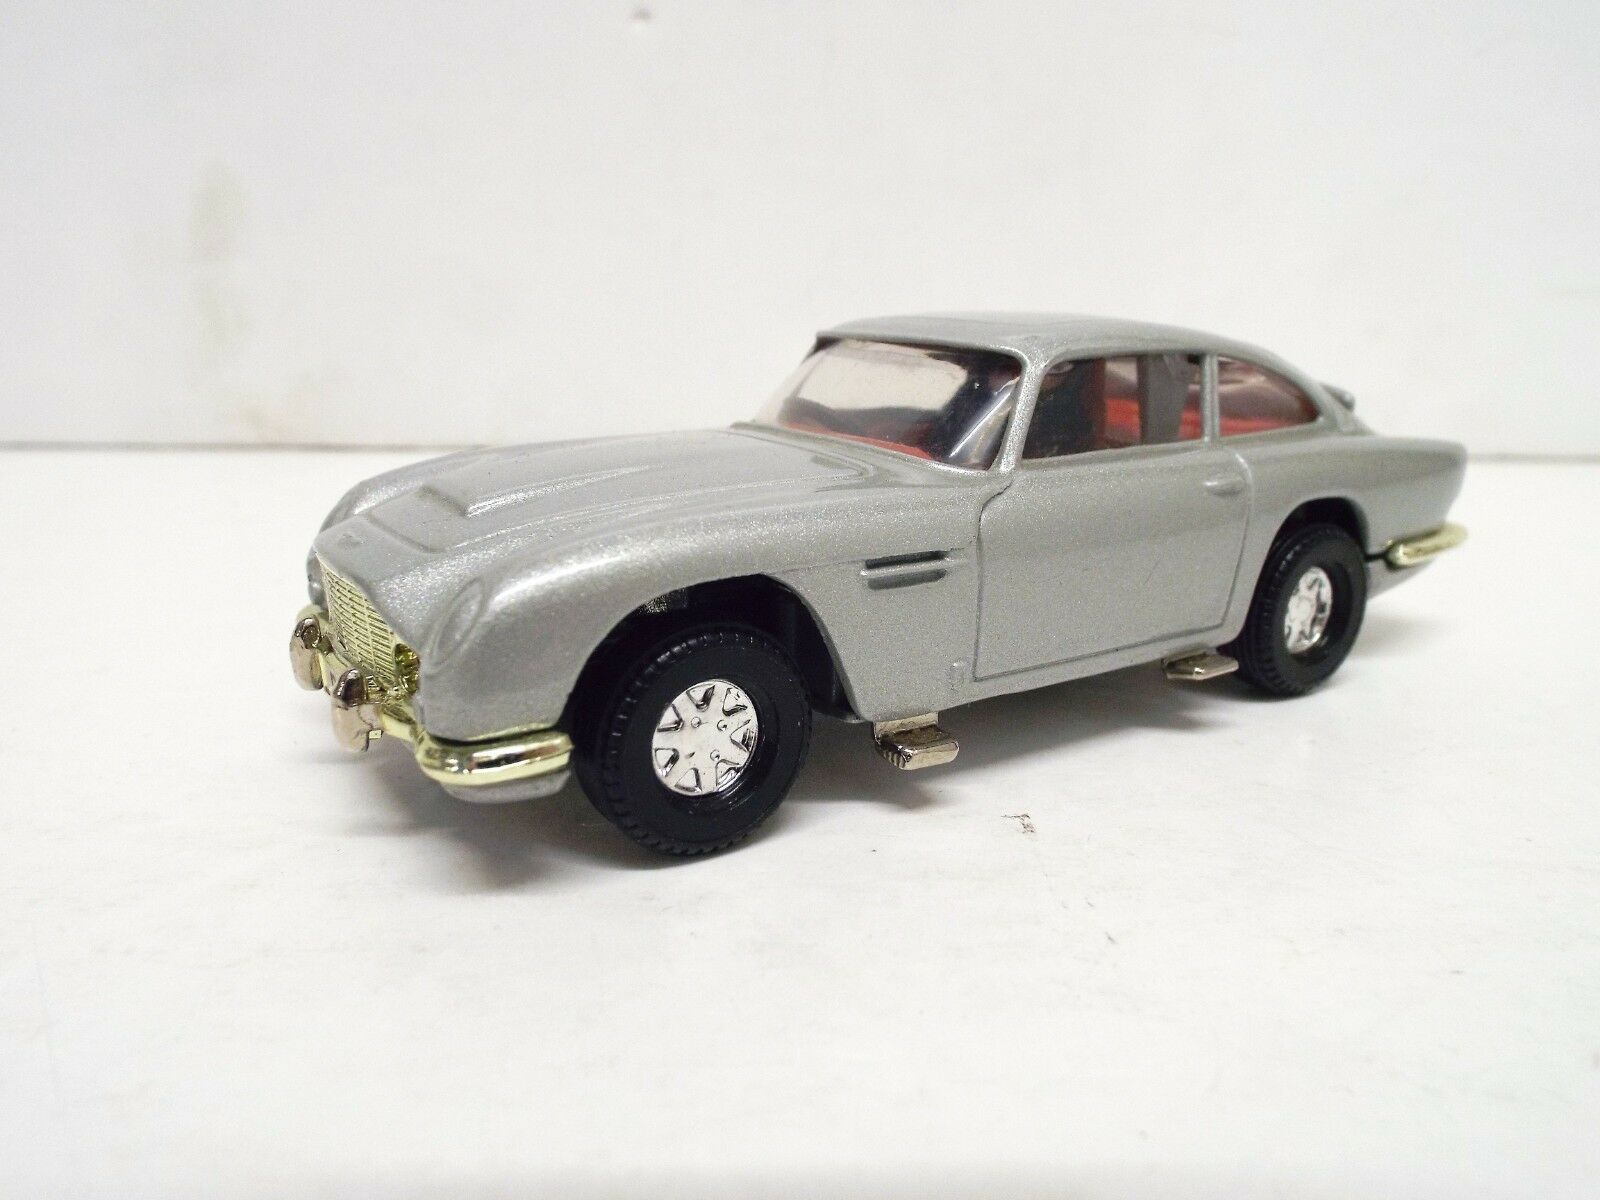 CORGI 1 36 SCALE JAMES BOND ASTON MARTIN ONLY EXCELLENT UNBOXED (C423)